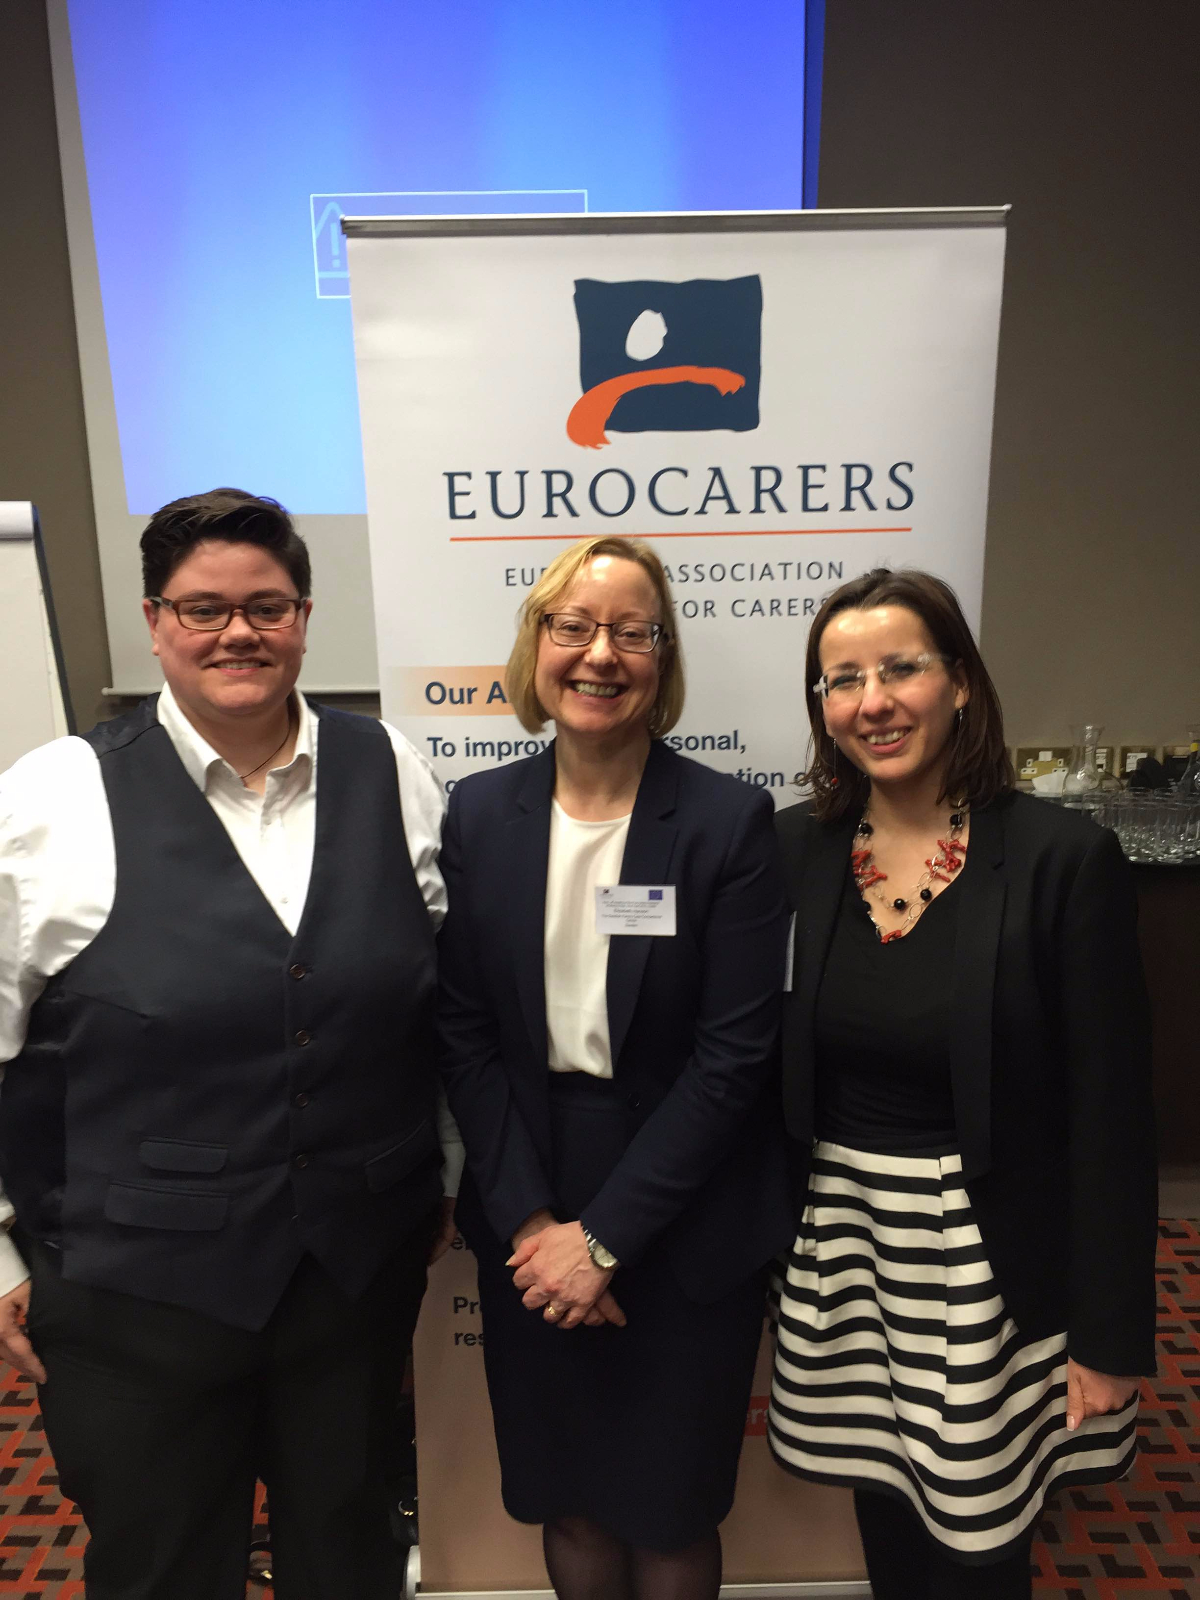 CAI Poicy & research officer Zoe Hughes with Dr. Elizabeth Hanson, Vice-President (Research) and Francesca Centola, (Adminstrator) of Eurocarers at a recent meeting in Dublin